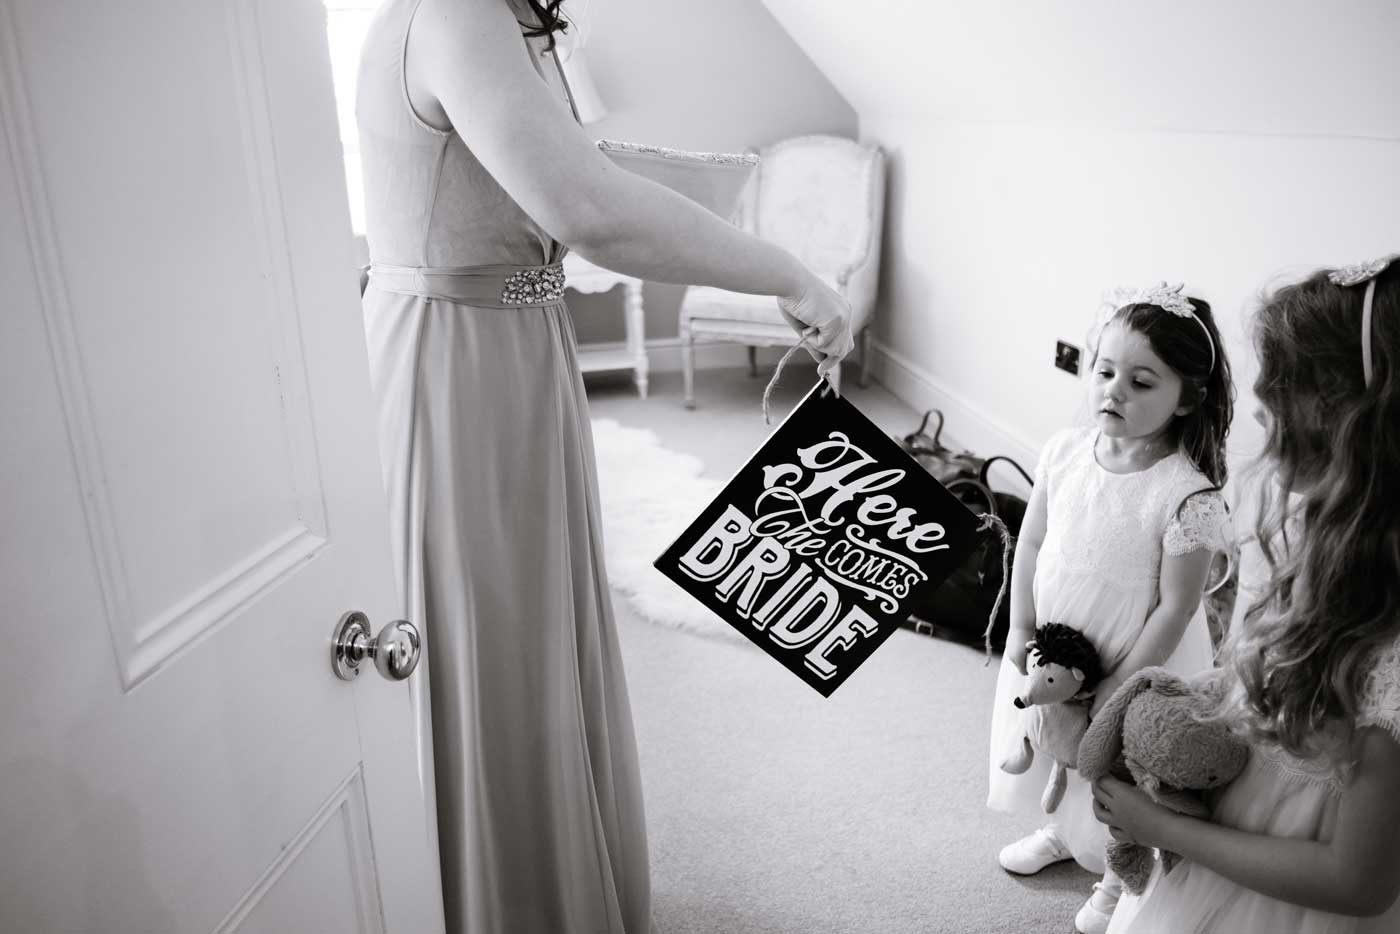 Maids being given a Here Comes the Bride sign